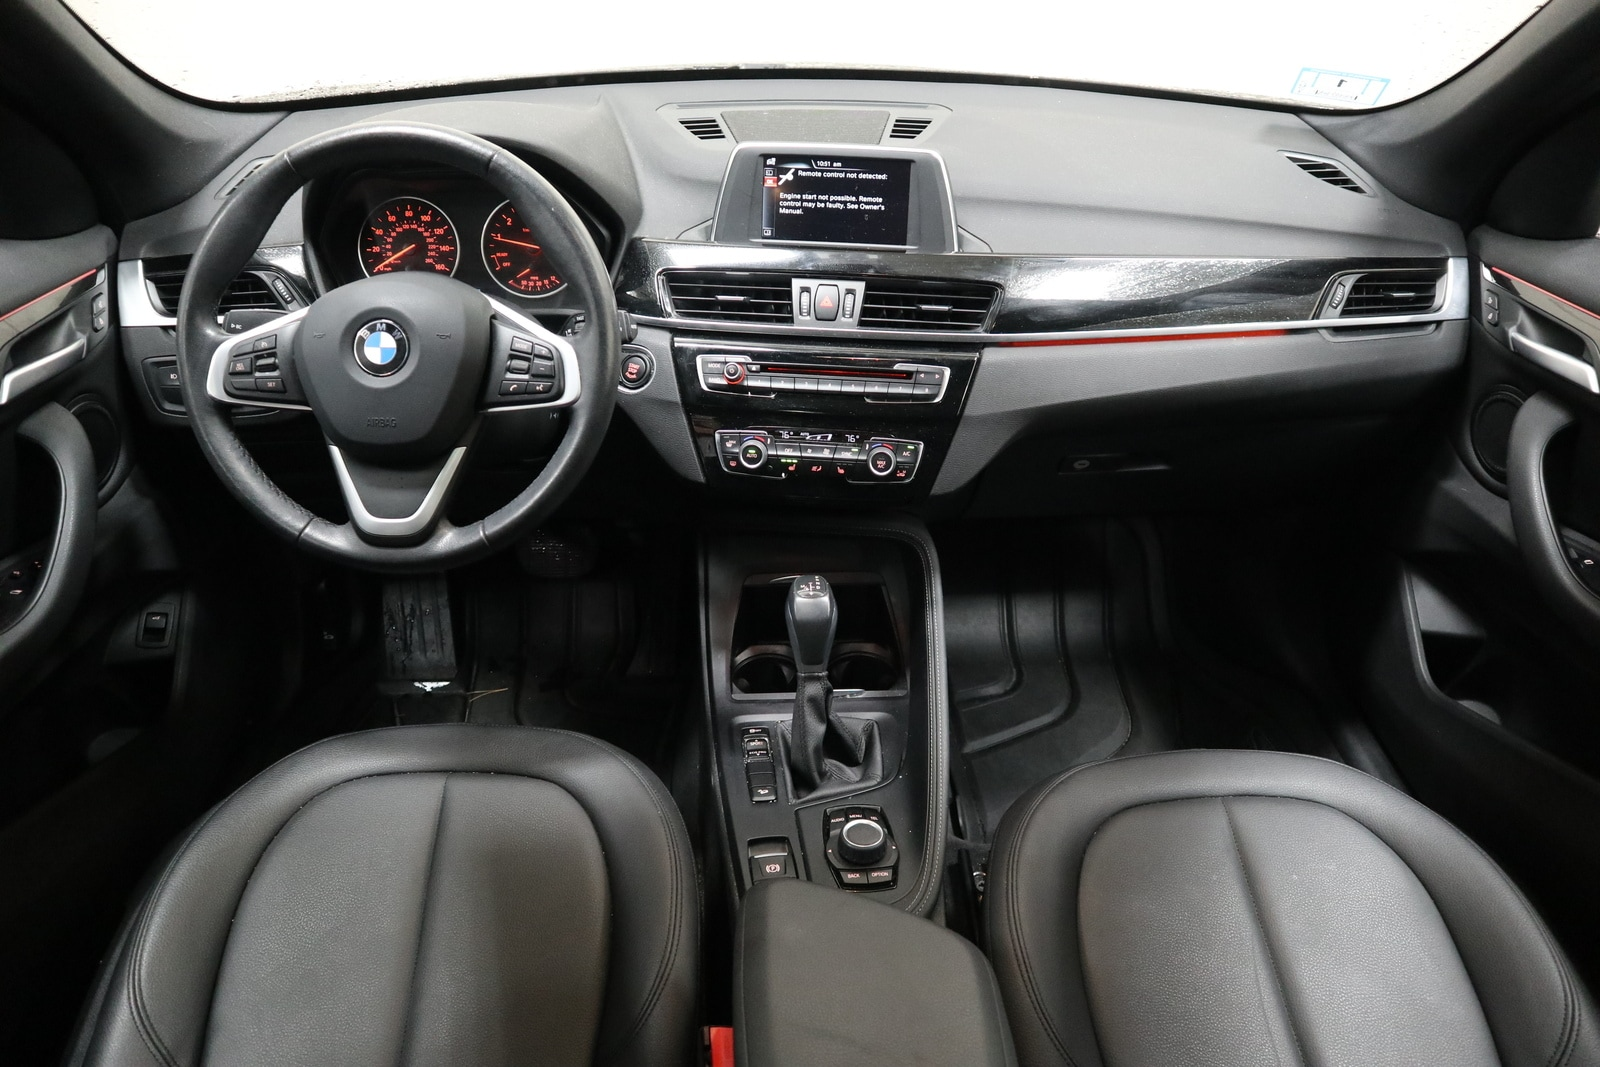 used 2017 BMW X1 car, priced at $23,498